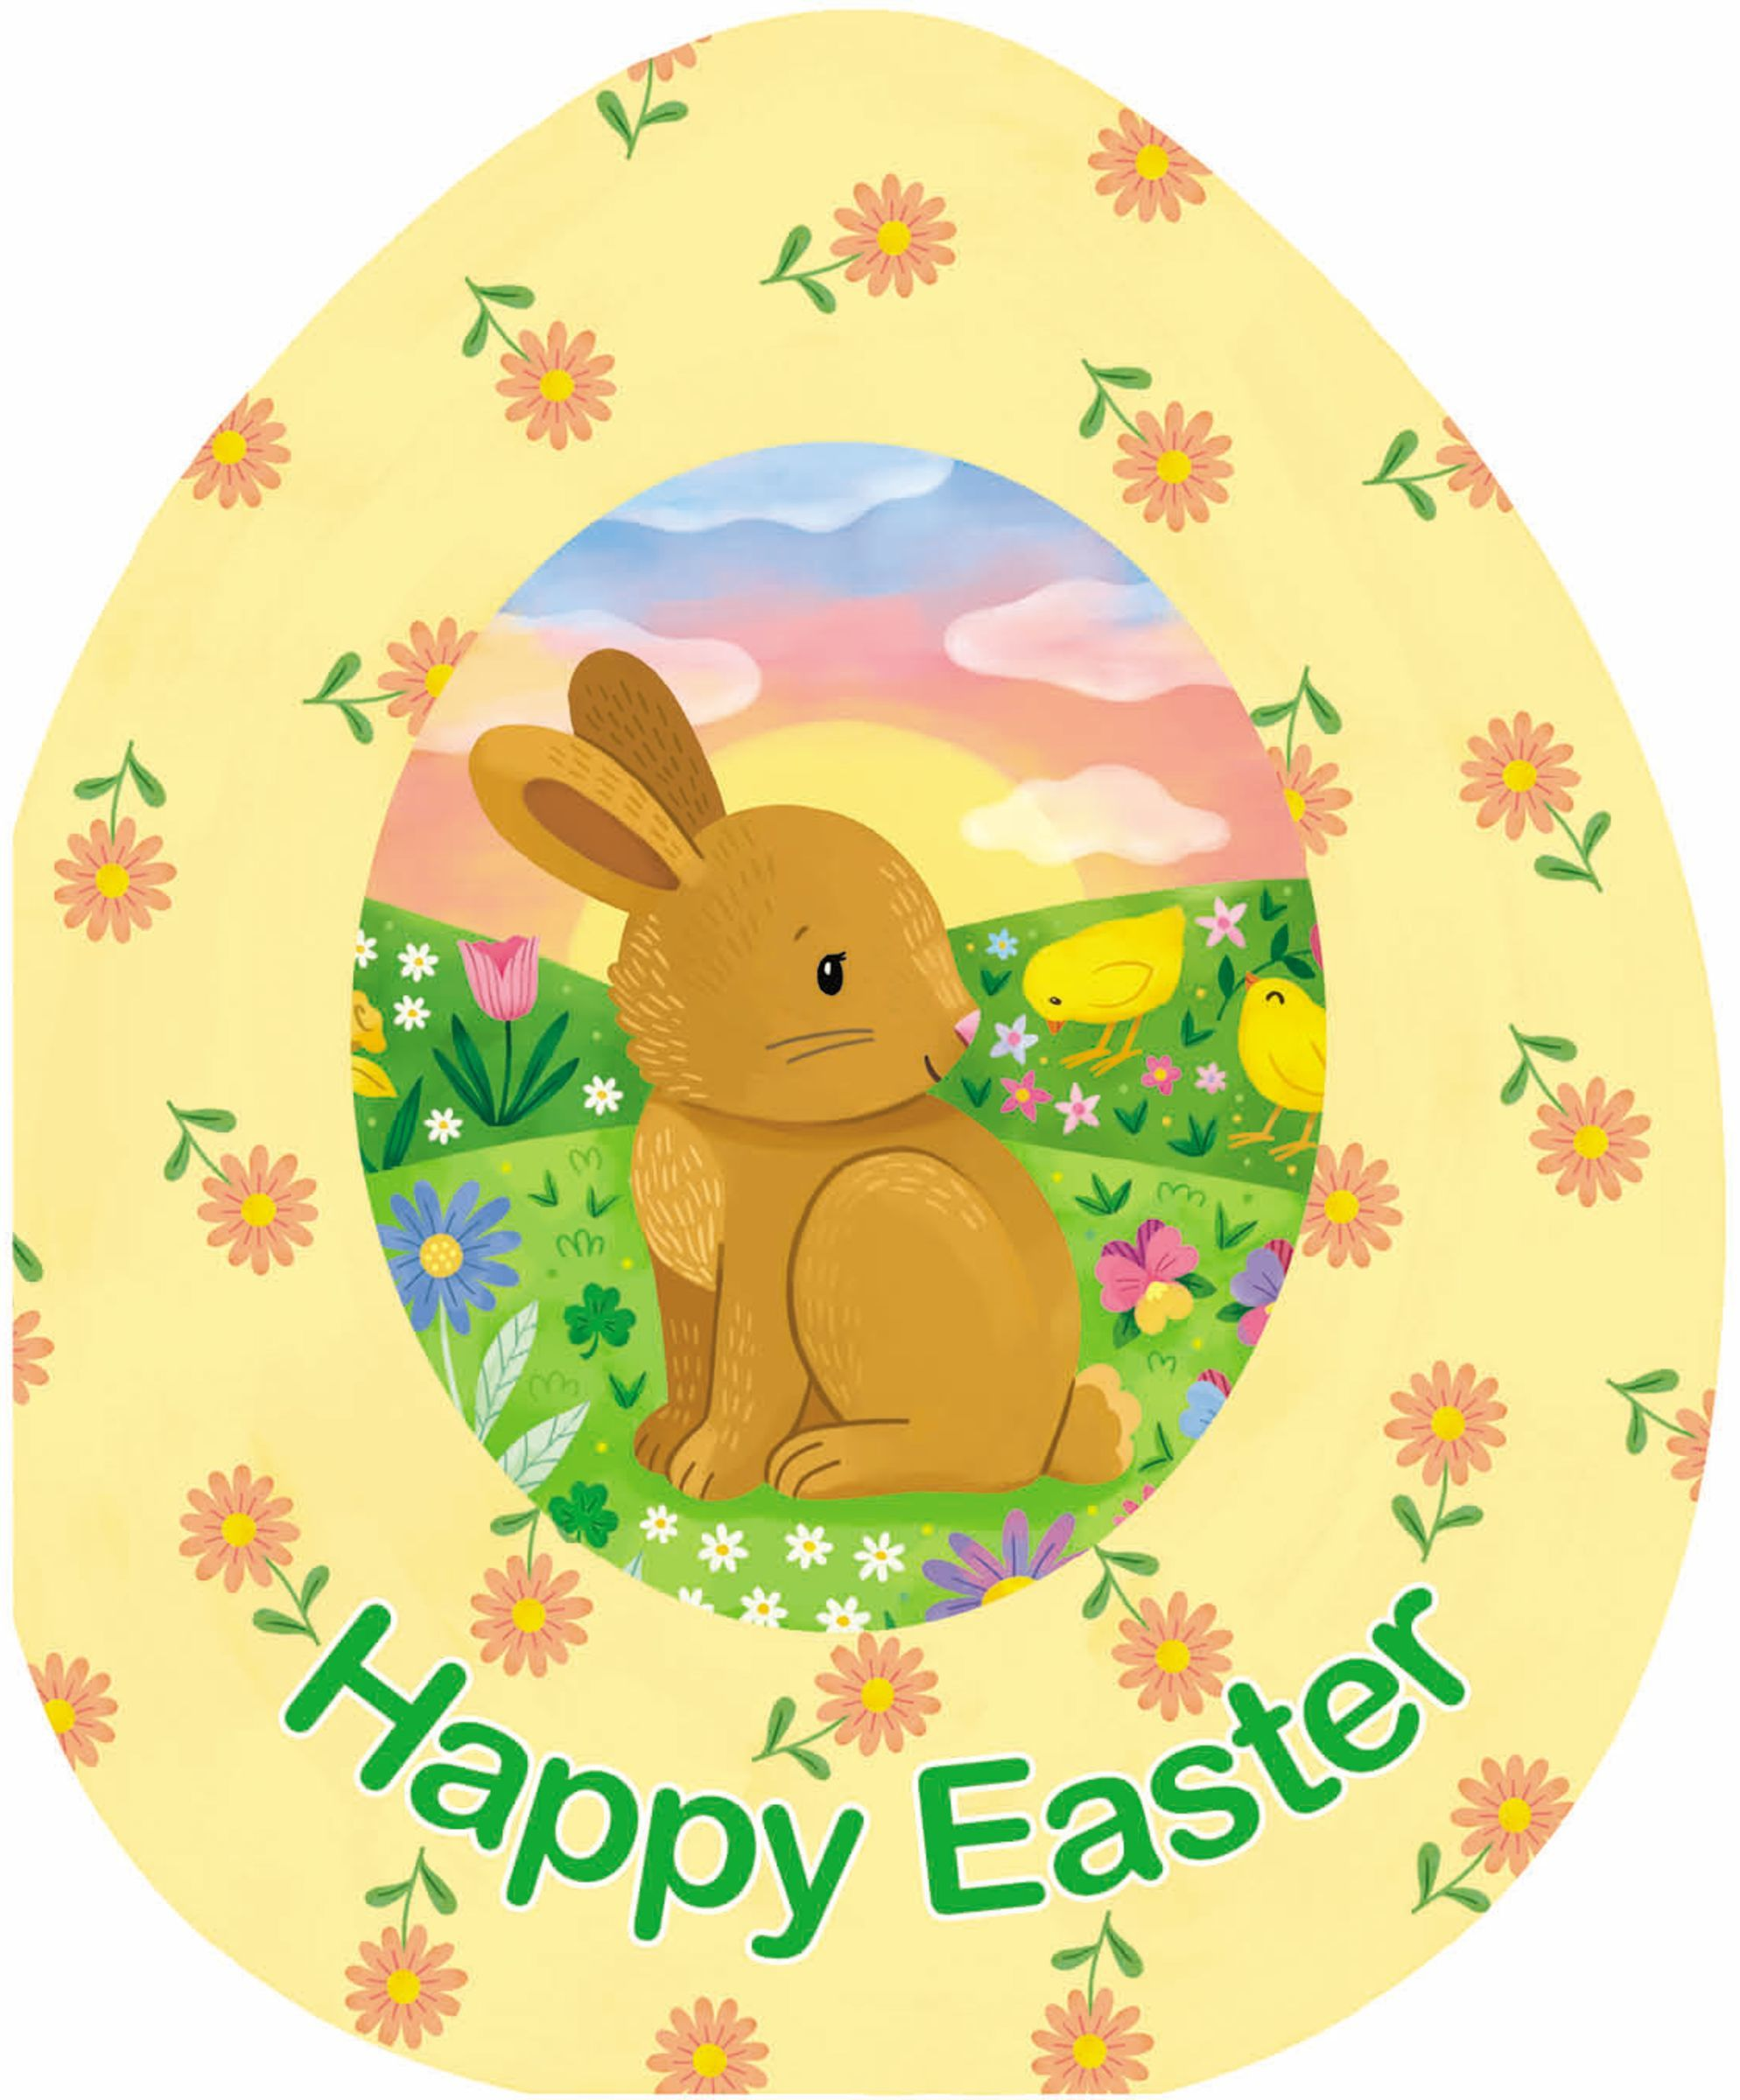 Happy Easter Boardbook